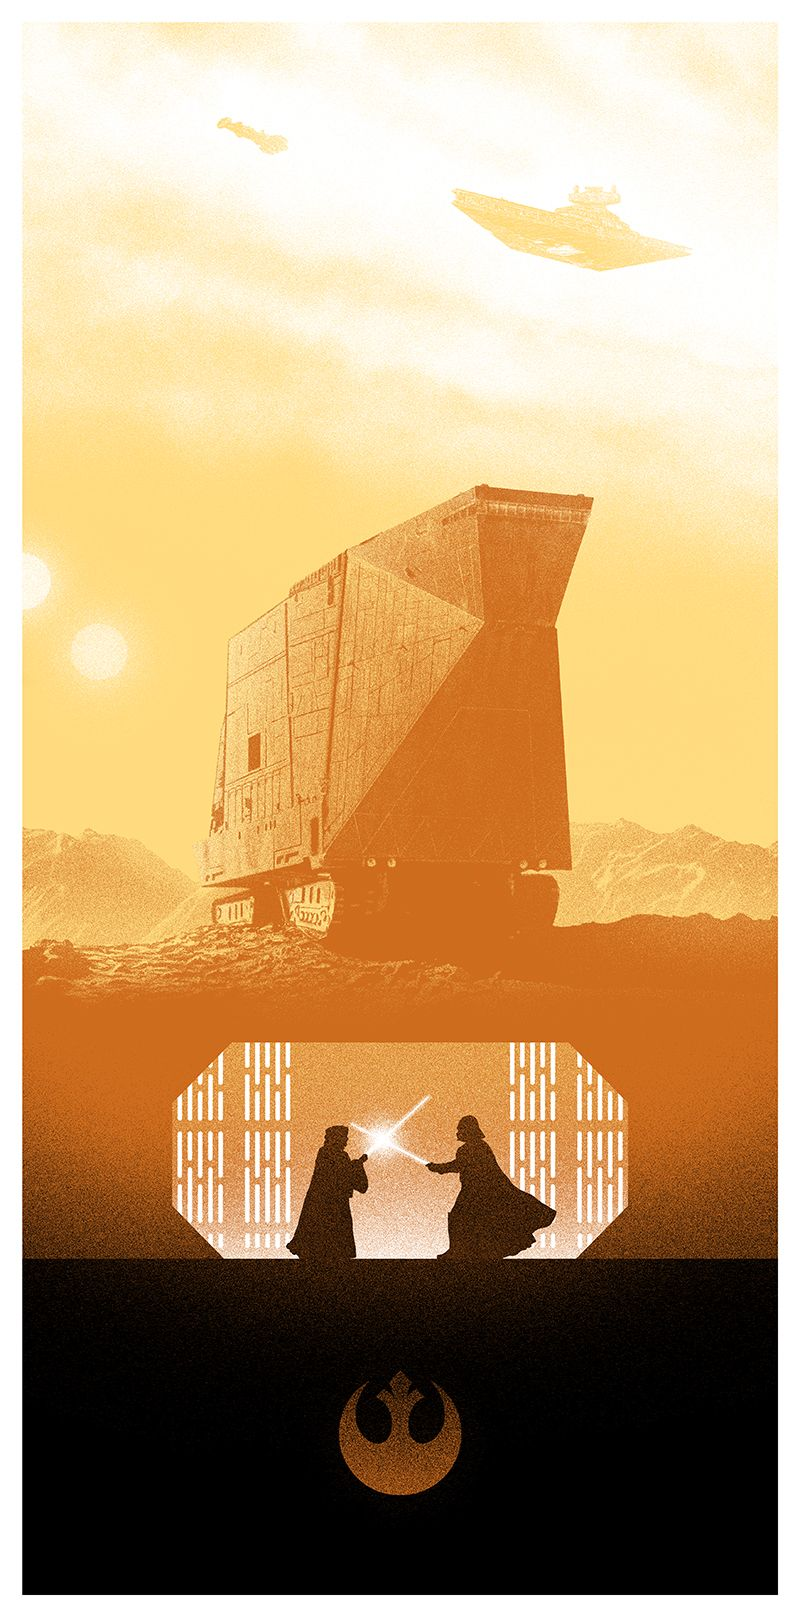 STAR WARS Posters from Marko Manev and Bottleneck Gallery | Collider